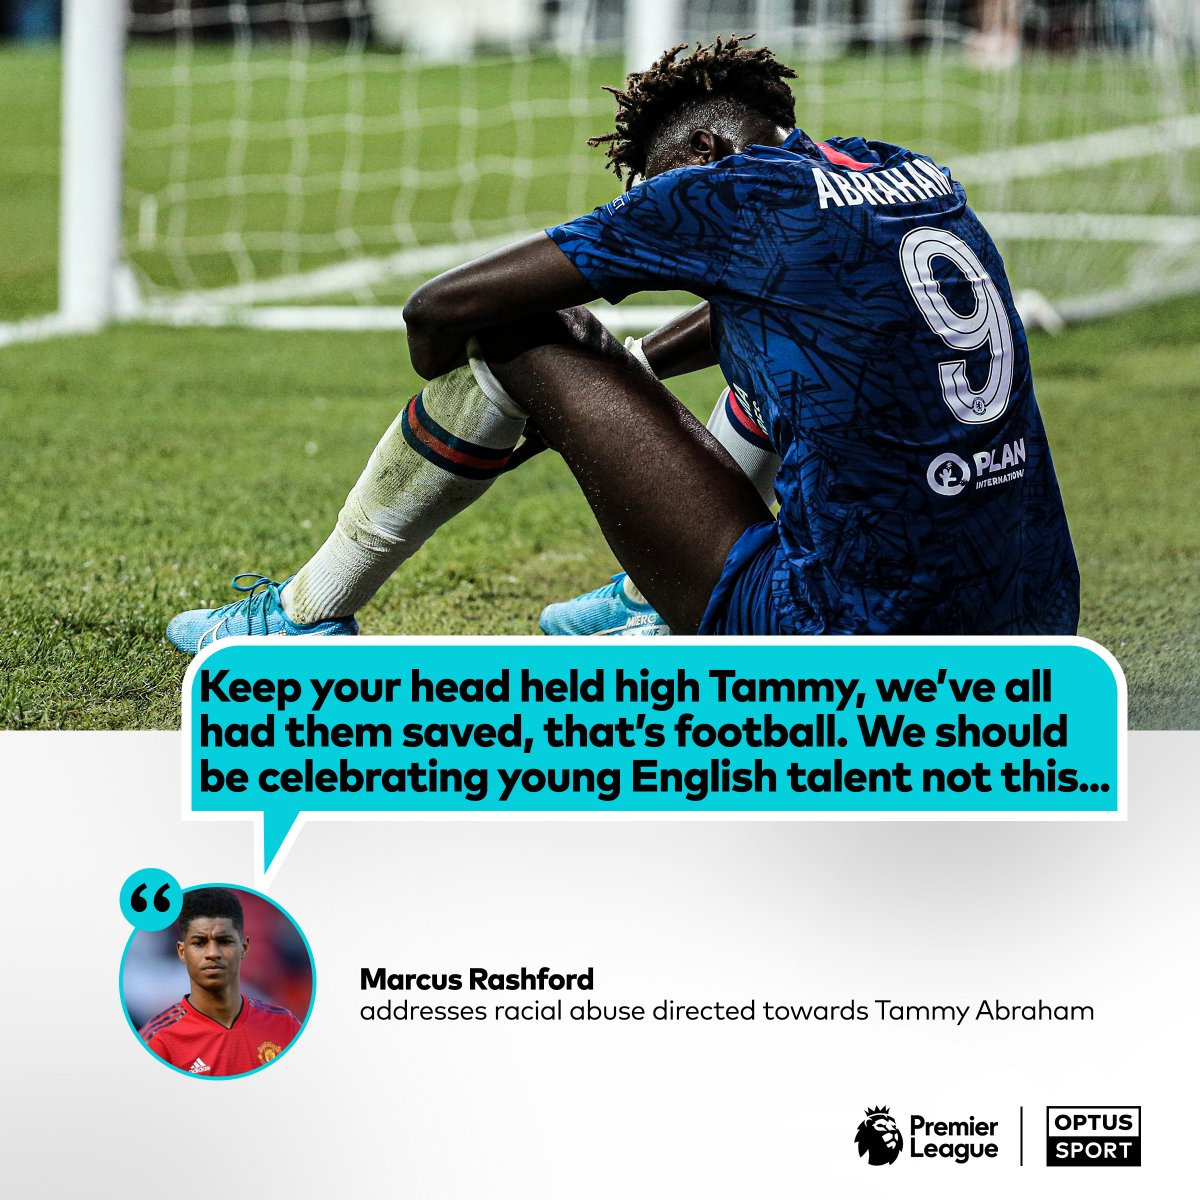 Optus Sport On Twitter Class From The Red Devil Marcus Rashford Throws Support Behind Abraham Tammy Abraham Who Missed The Decisive Spot Kick In Yesterday S Supercup Penalty Shoot Out Has Received A Torrent